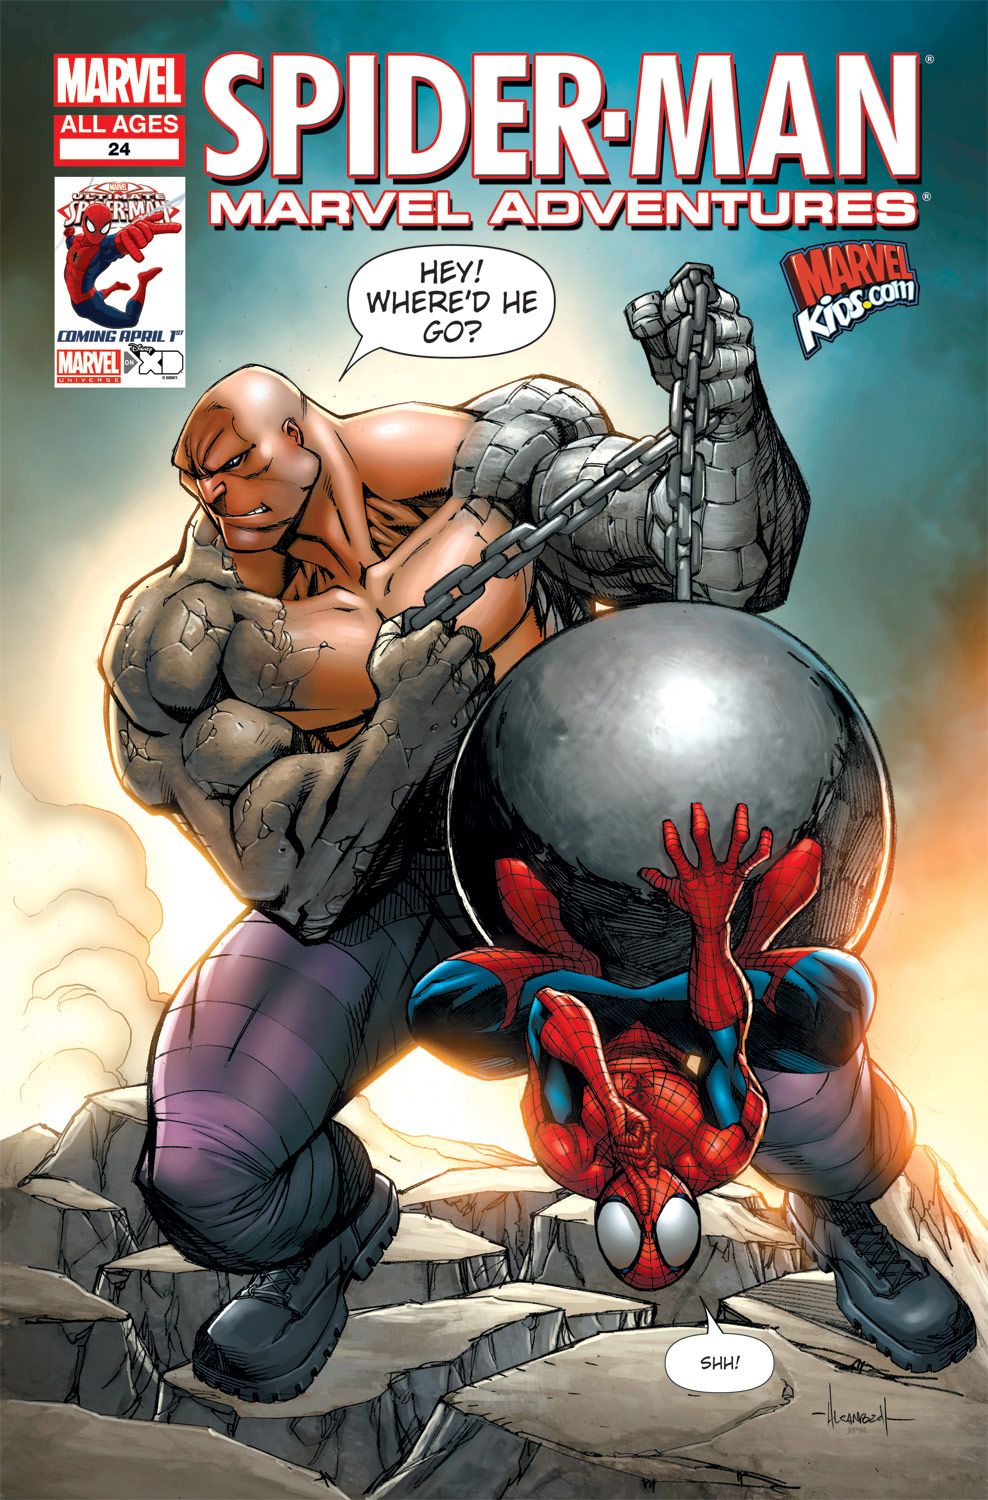 Marvel Adventures Spider-Man (2010) #24